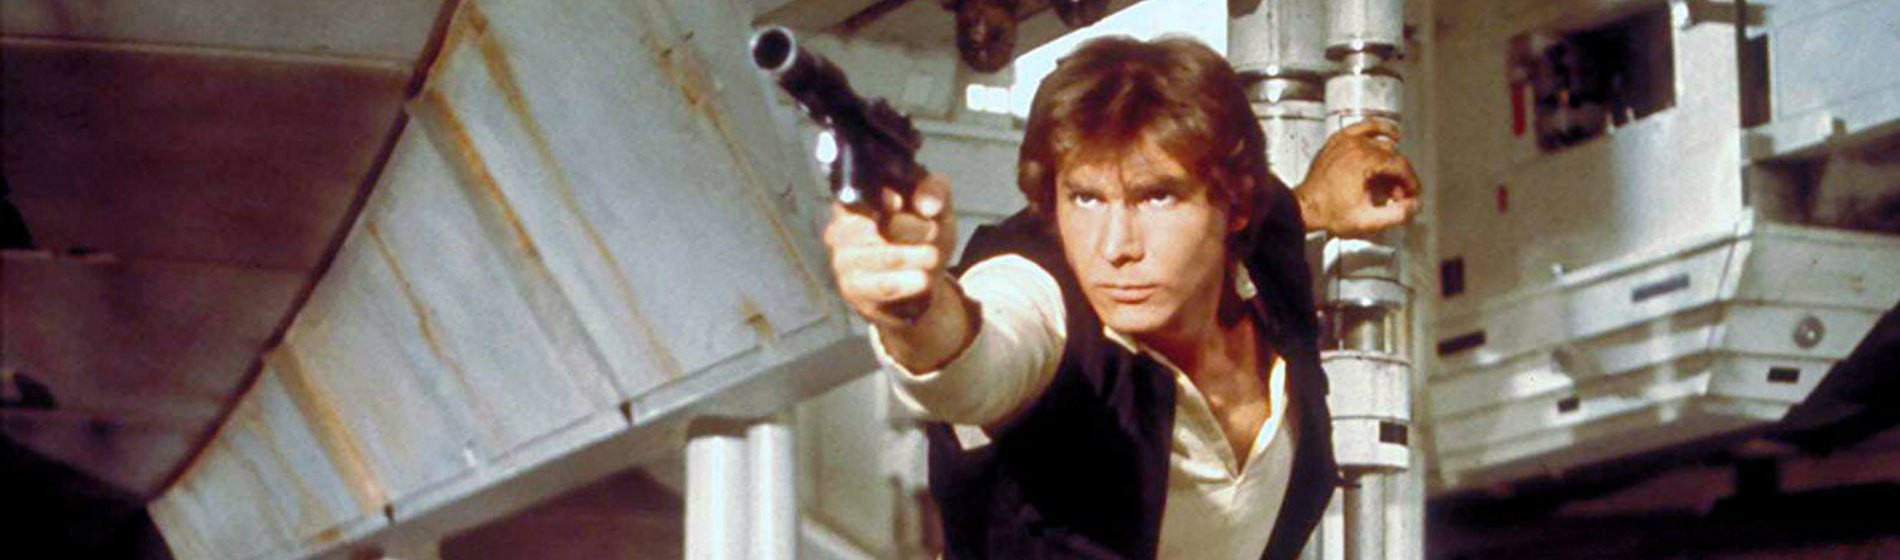 Star-Wars-1977-Han-solo-action-shot